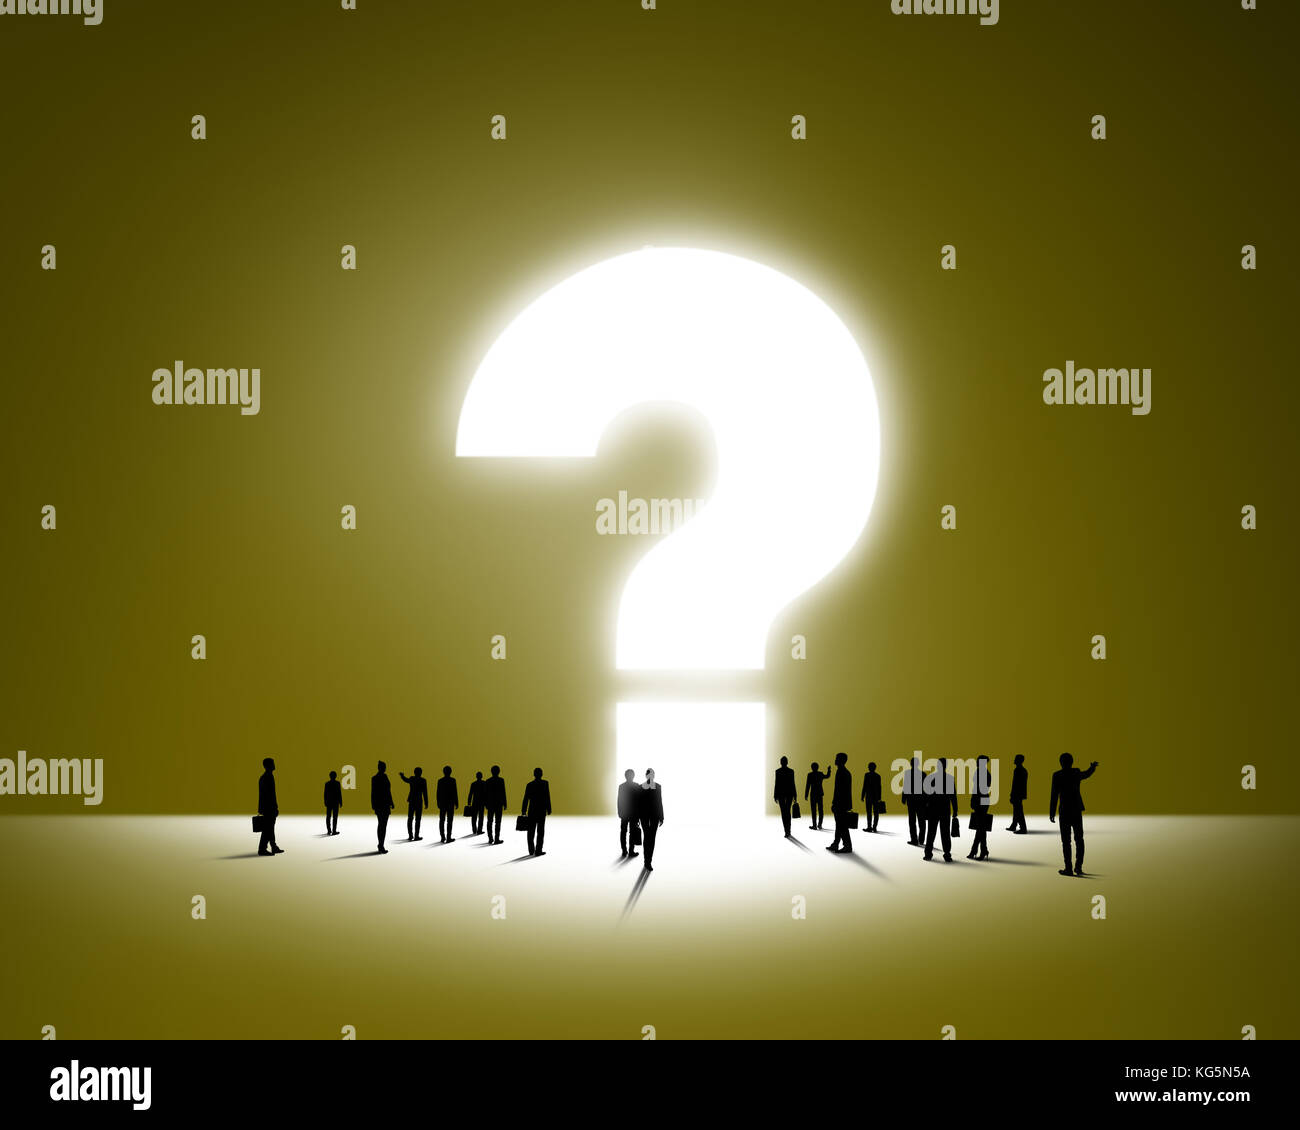 Large group of business people and big question mark Stock Photo